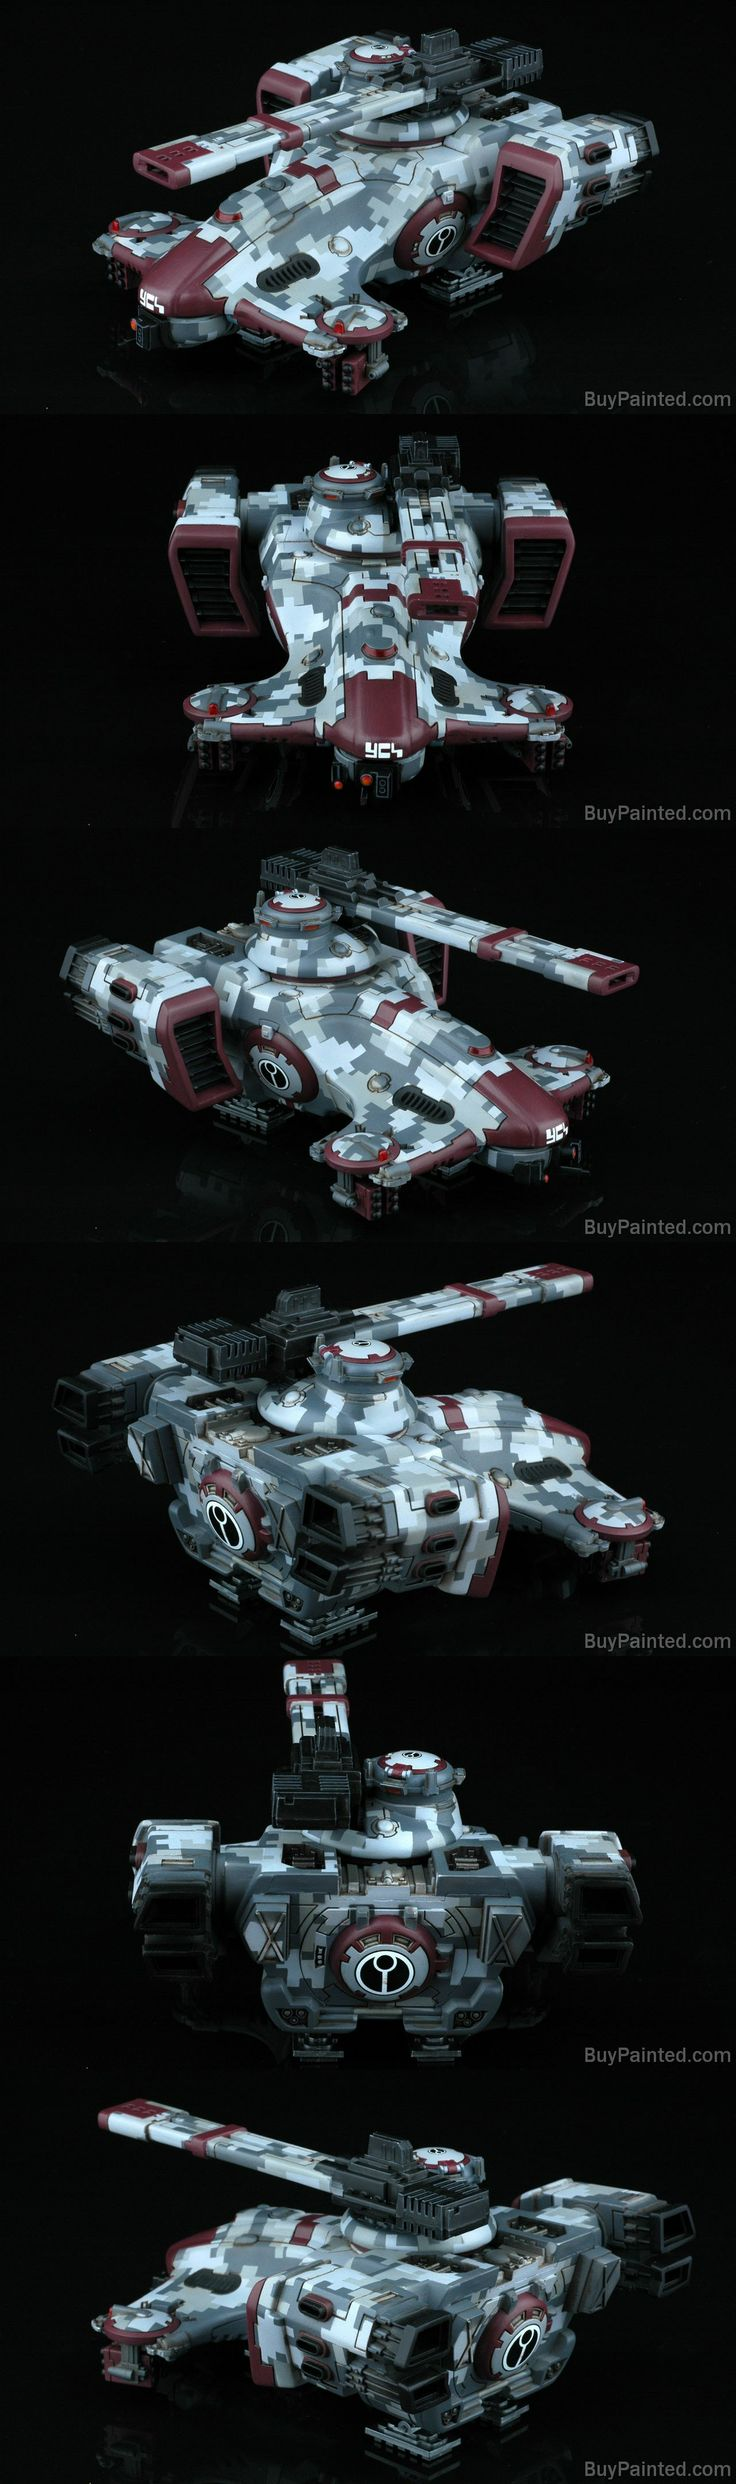 Warhmmer 40k Tau Hammerhead painted in digital camo by the guys at buypainted.com